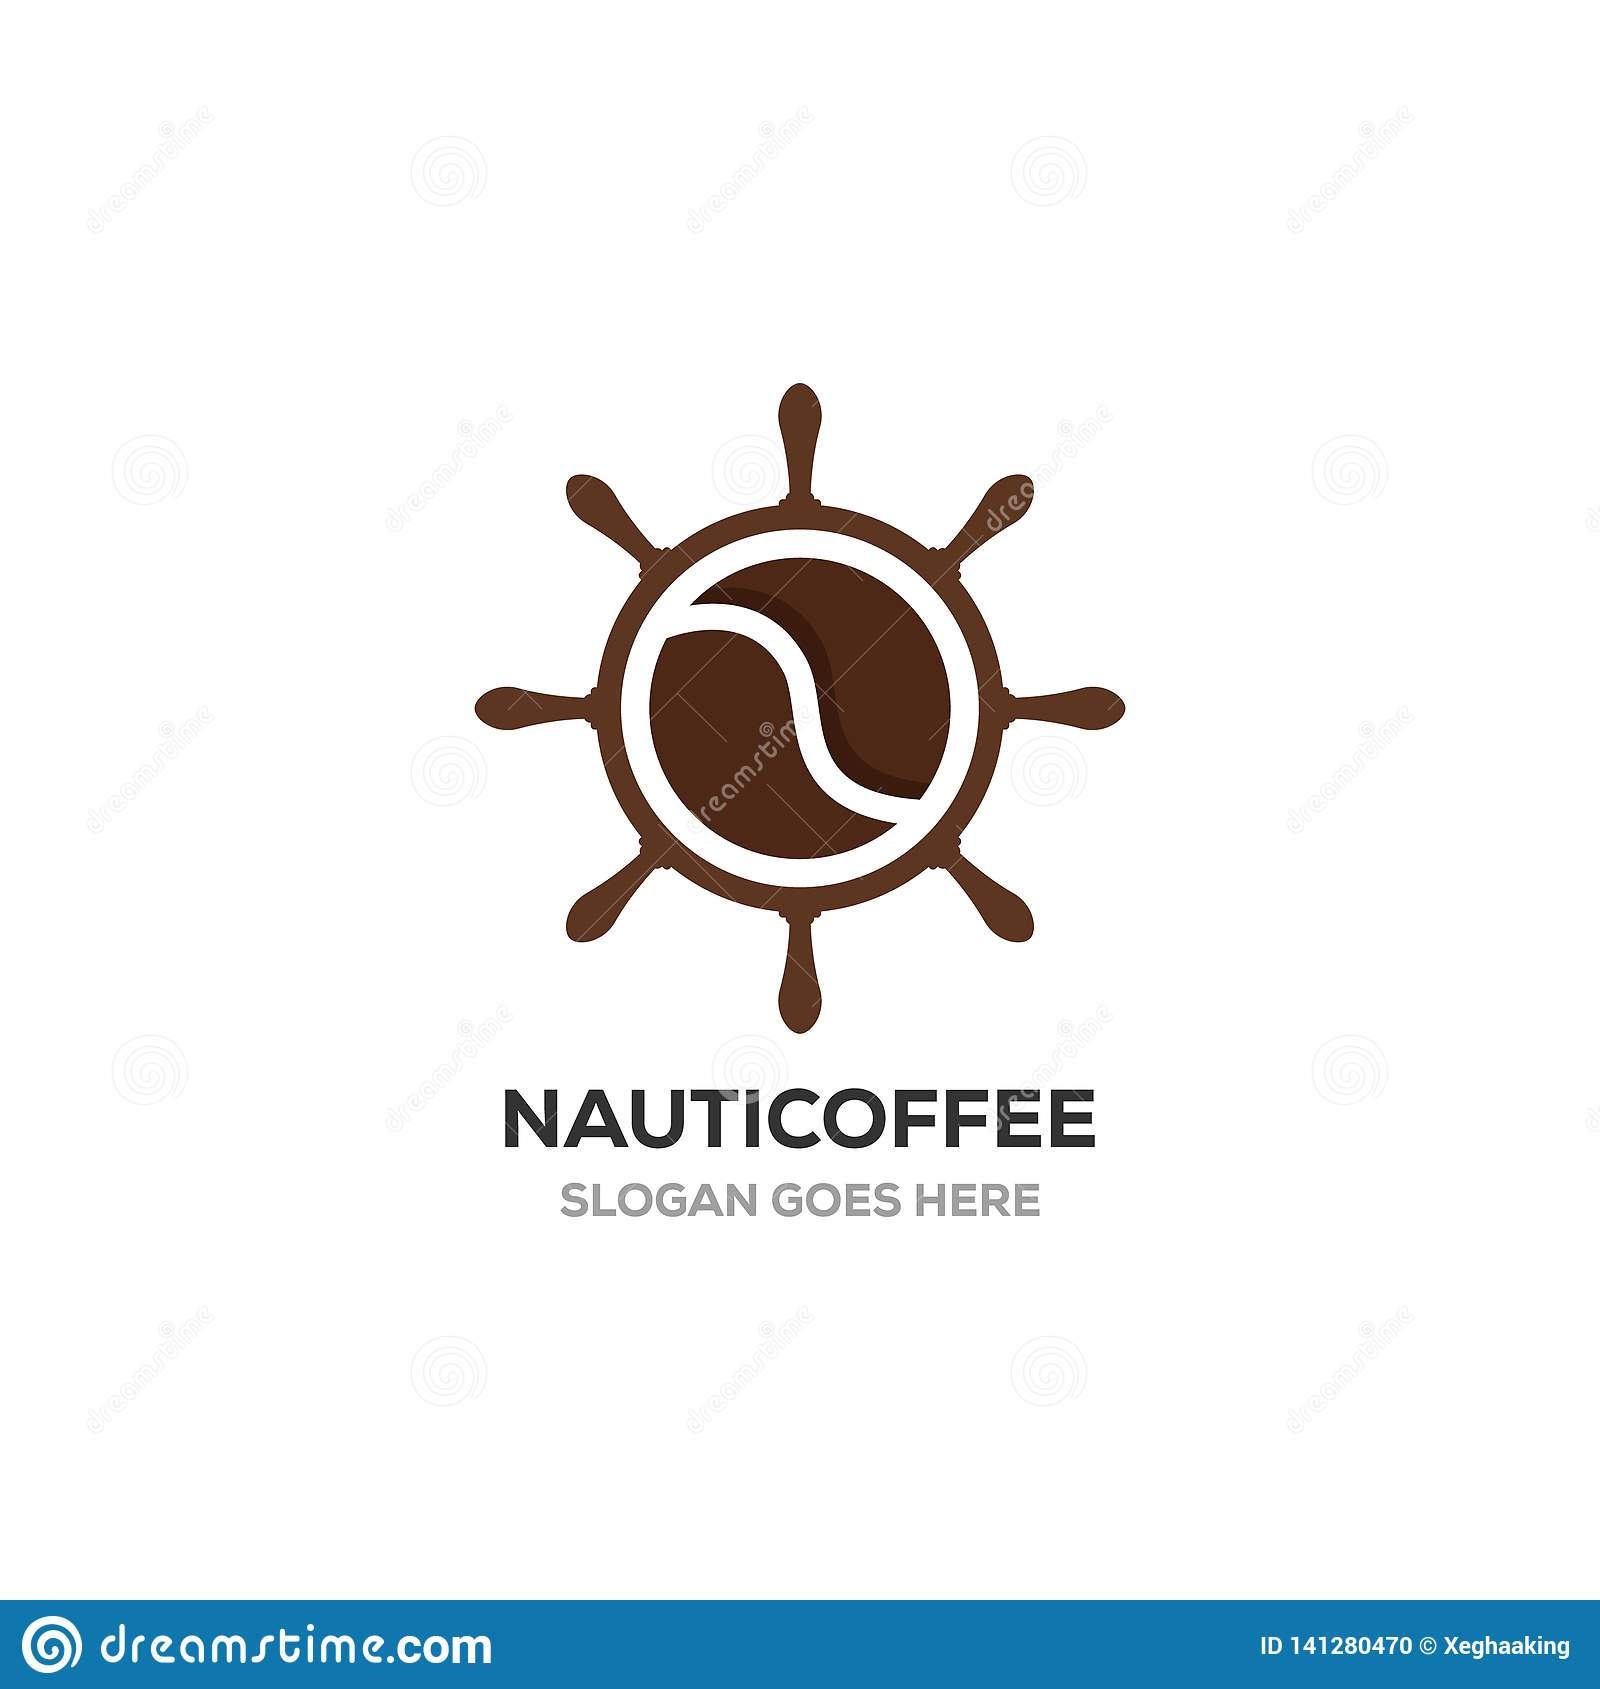 Nautical with coffee logo designs inspirations